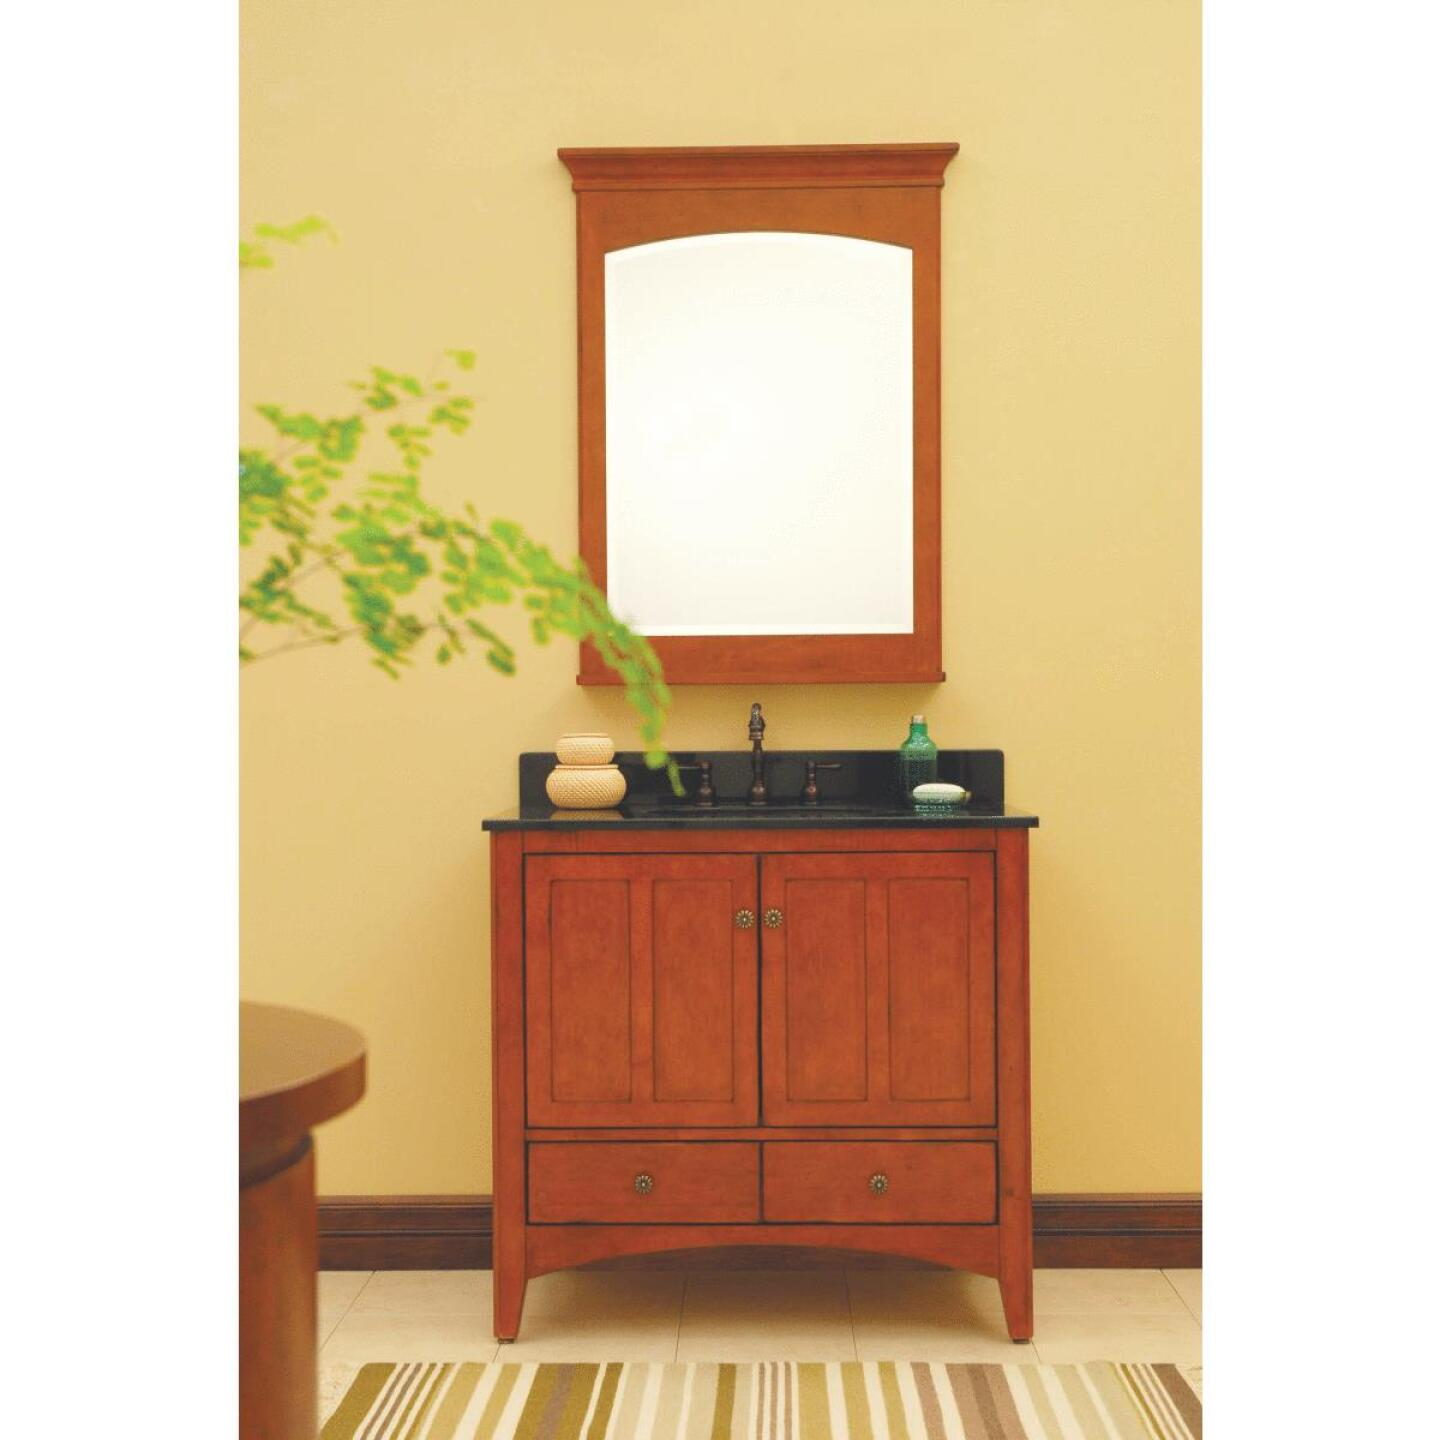 Sunny Wood Expressions Cinnamon 27 In. W x 32 In. H x 6-1/2 In. D Single Mirror Surface Mount Medicine Cabinet Image 2